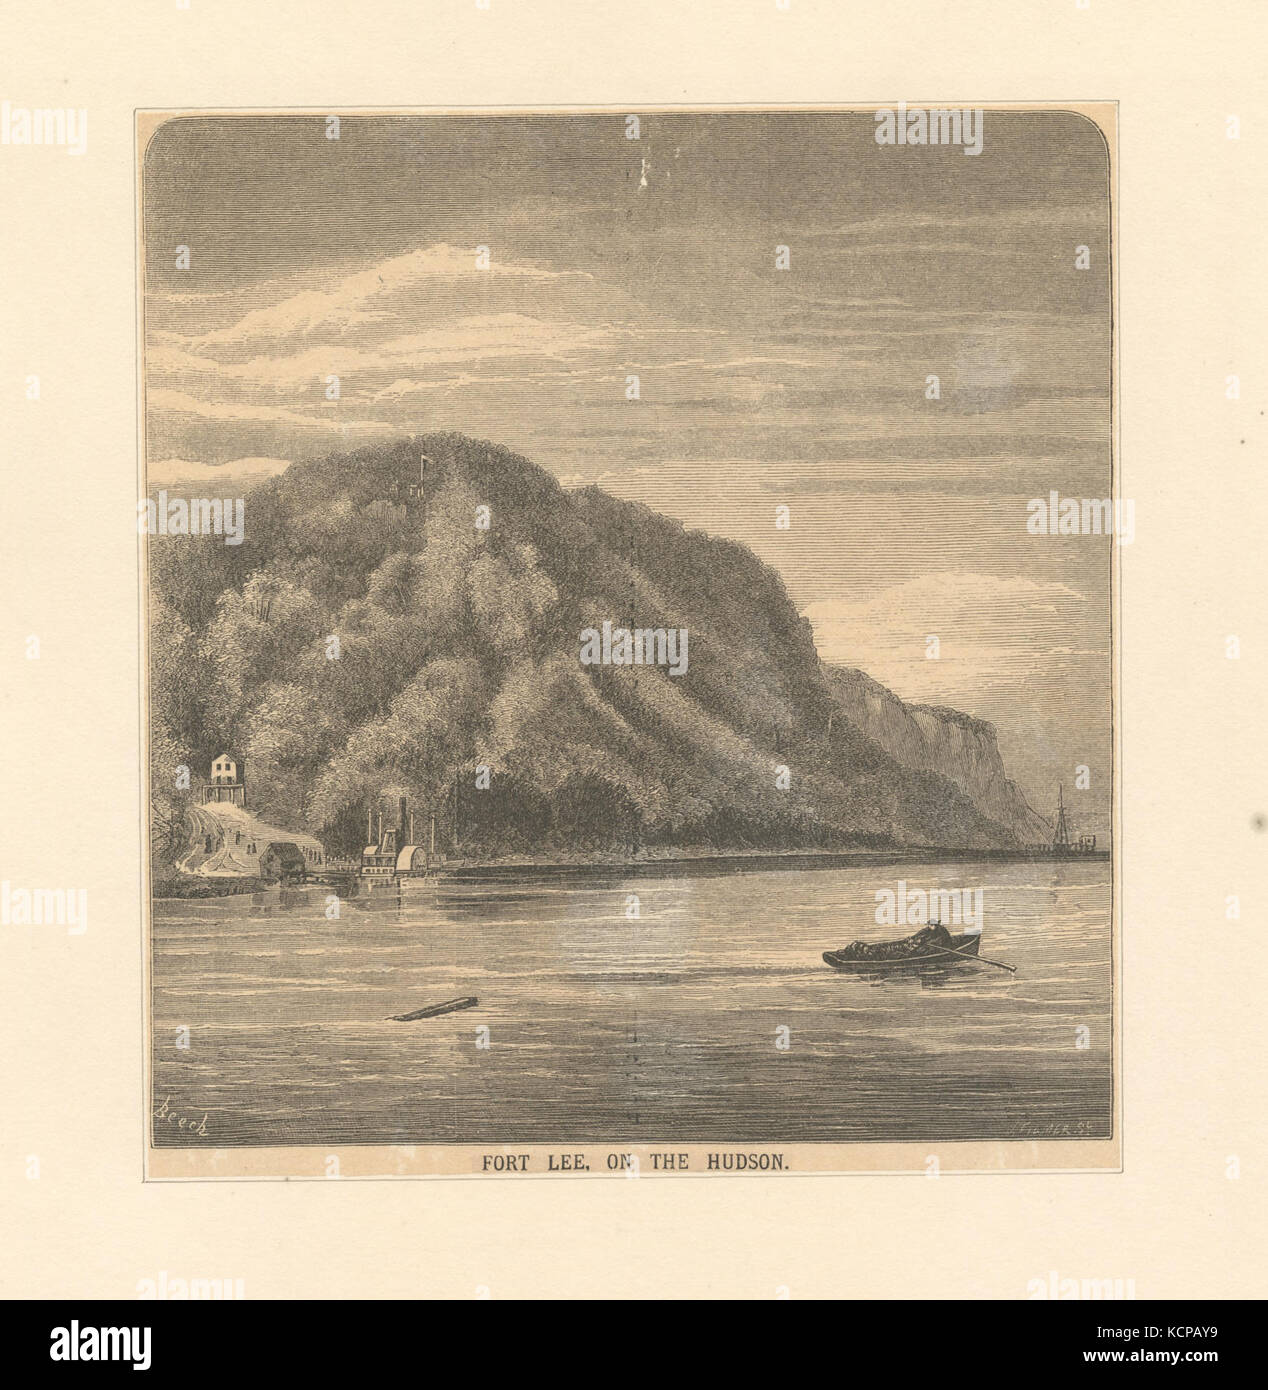 Fort Lee on the Hudson (NYPL b12610211 424942) - Stock Image